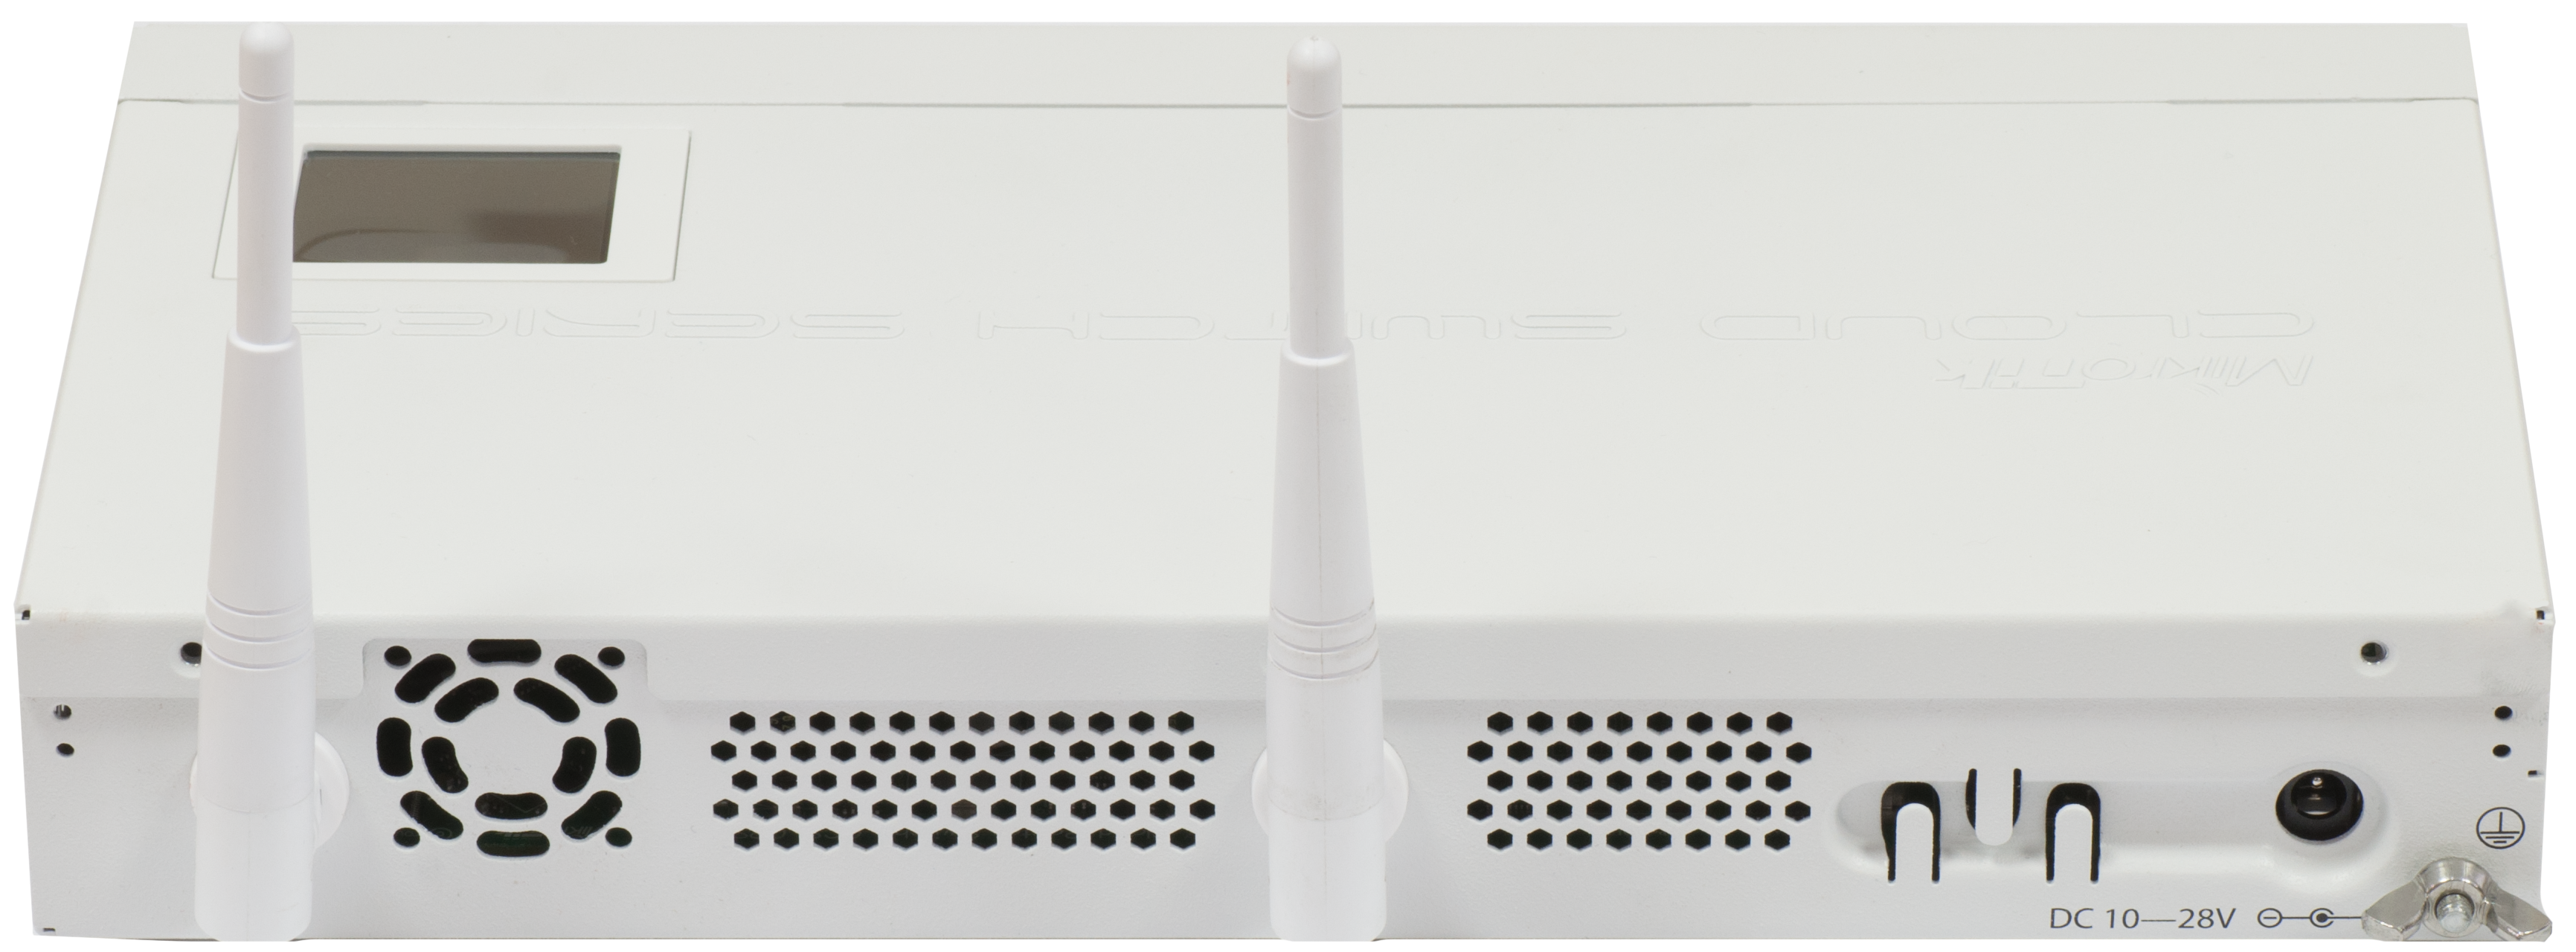 Mikrotik Routerboard Crs125 24g 1s 2hnd In Cloud Router